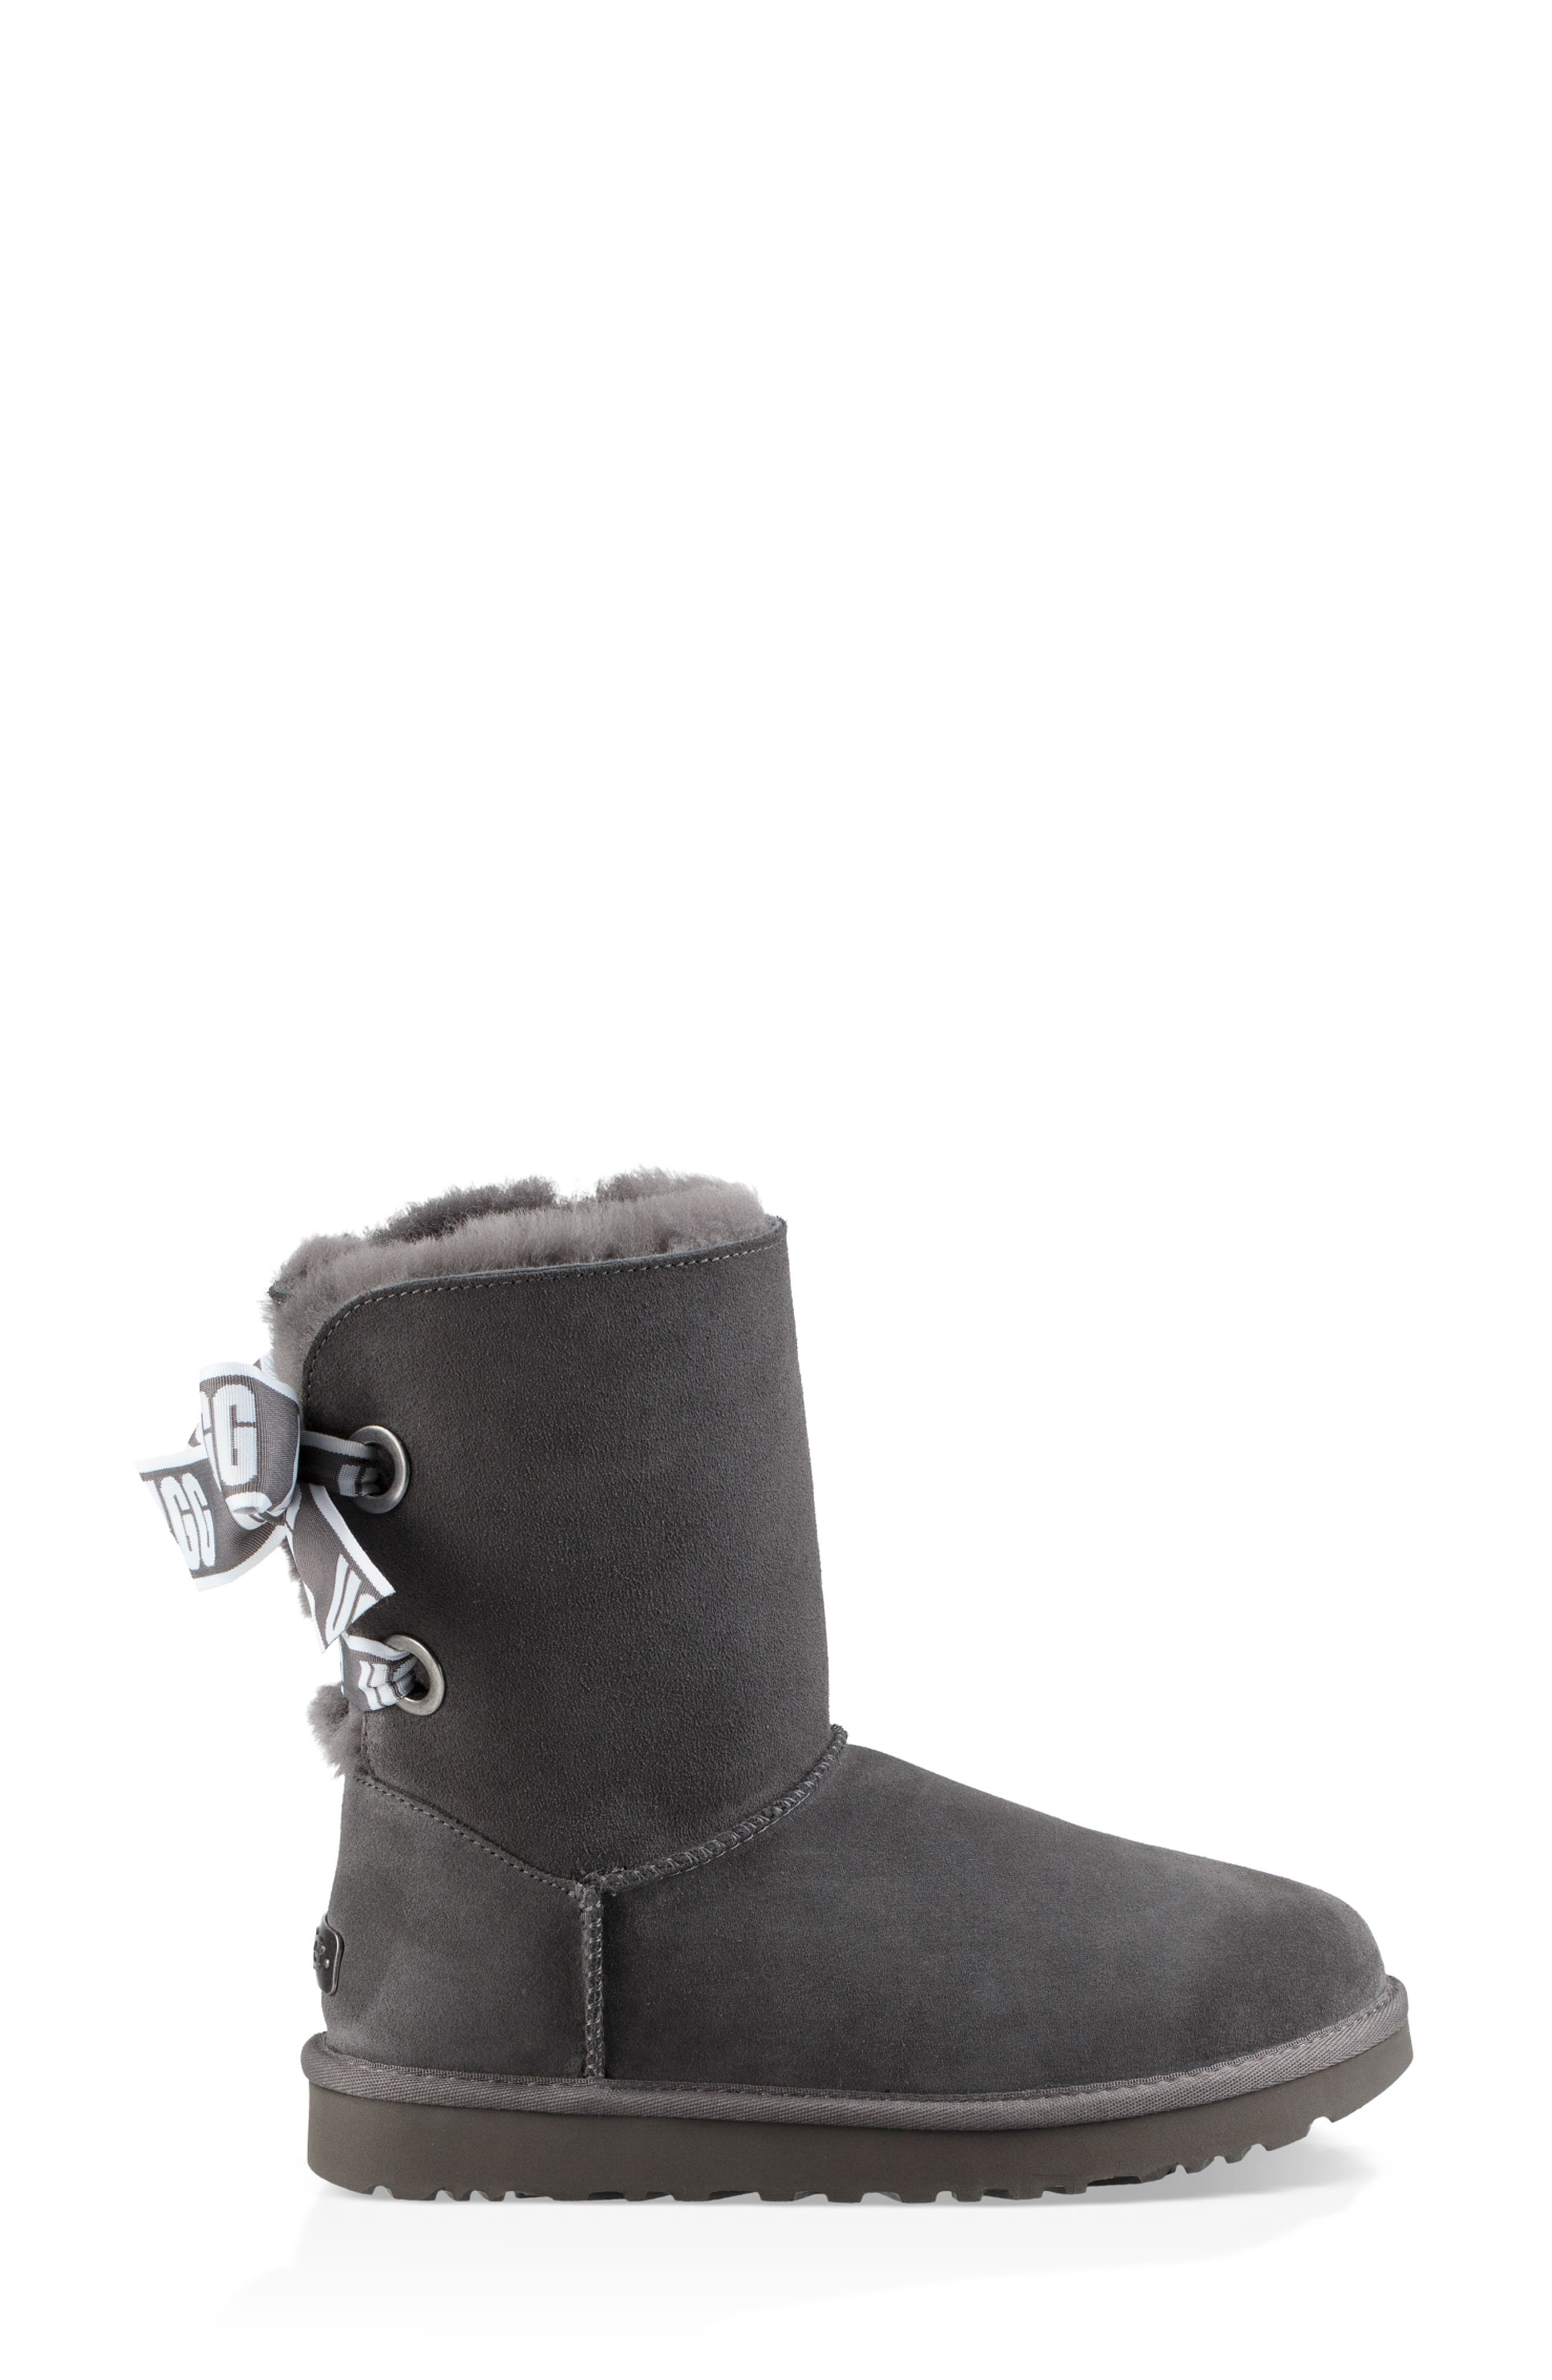 Customizable Bailey Bow Genuine Shearling Bootie,                             Alternate thumbnail 7, color,                             CHARCOAL SUEDE